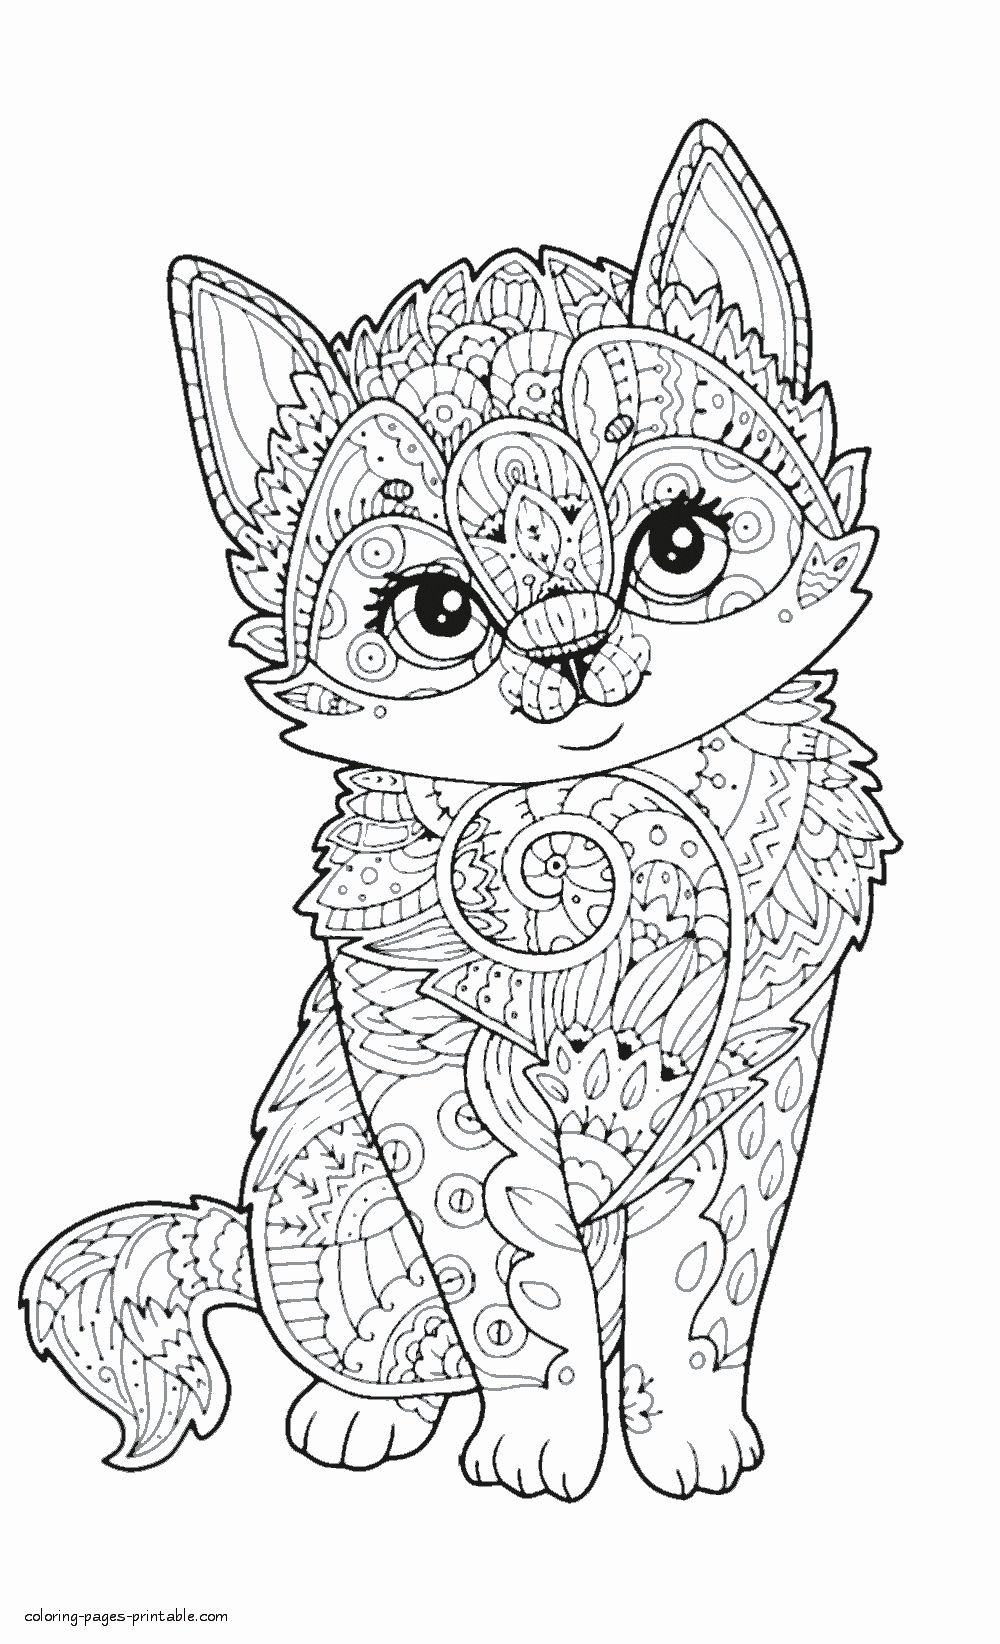 Printable Zoo Animals Coloring Pages in 2020 | Adult ...